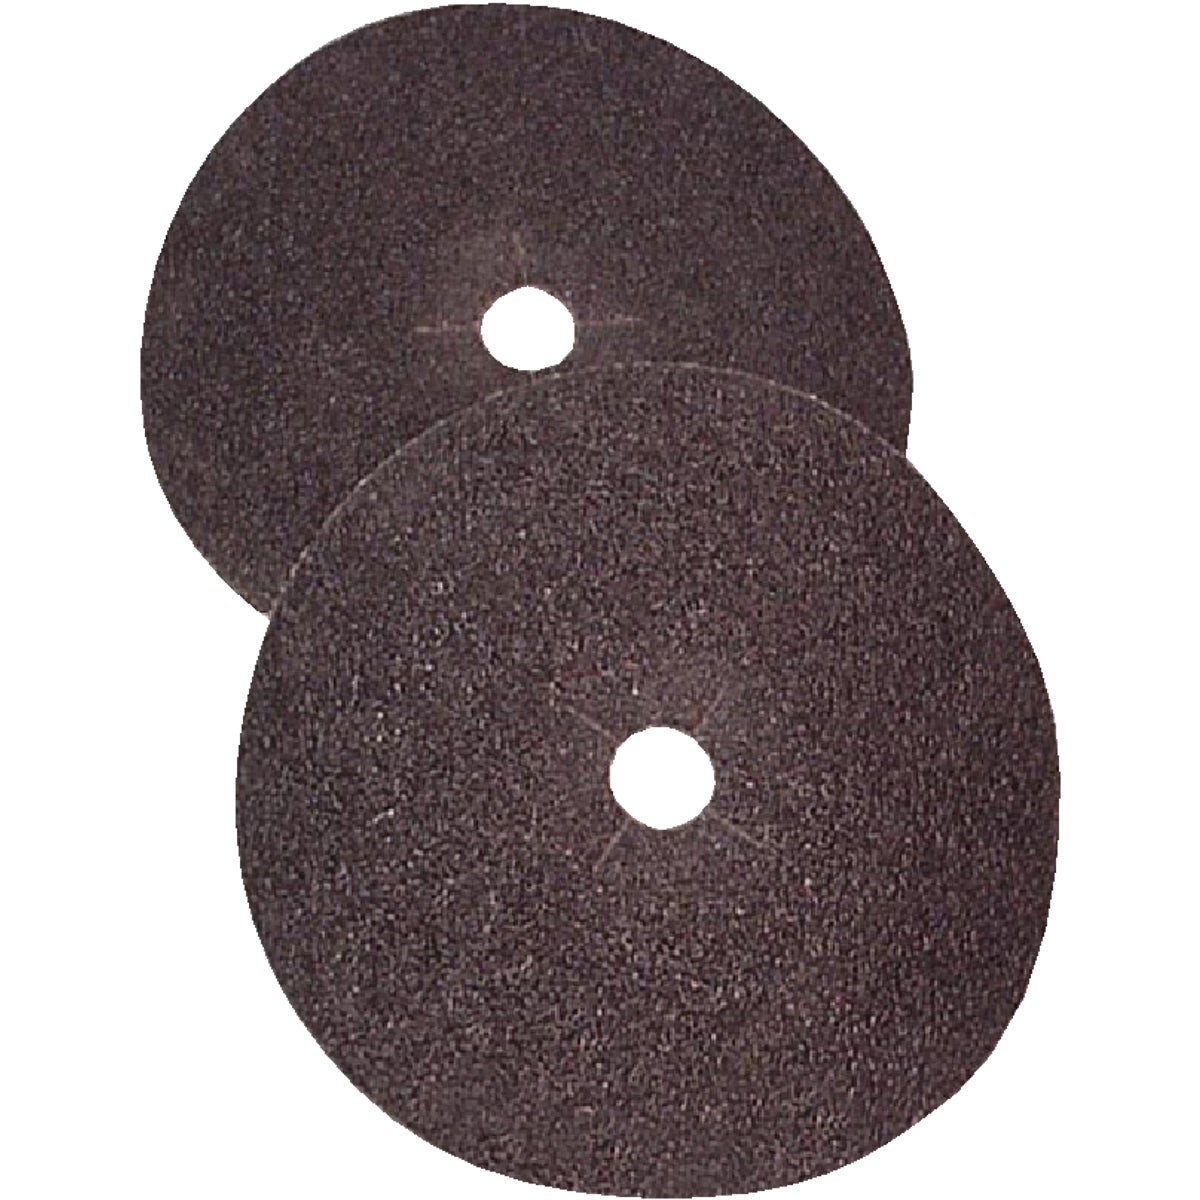 "7"" 36G FLR SANDING DISC - 006-870336 by Virginia Abrasives"